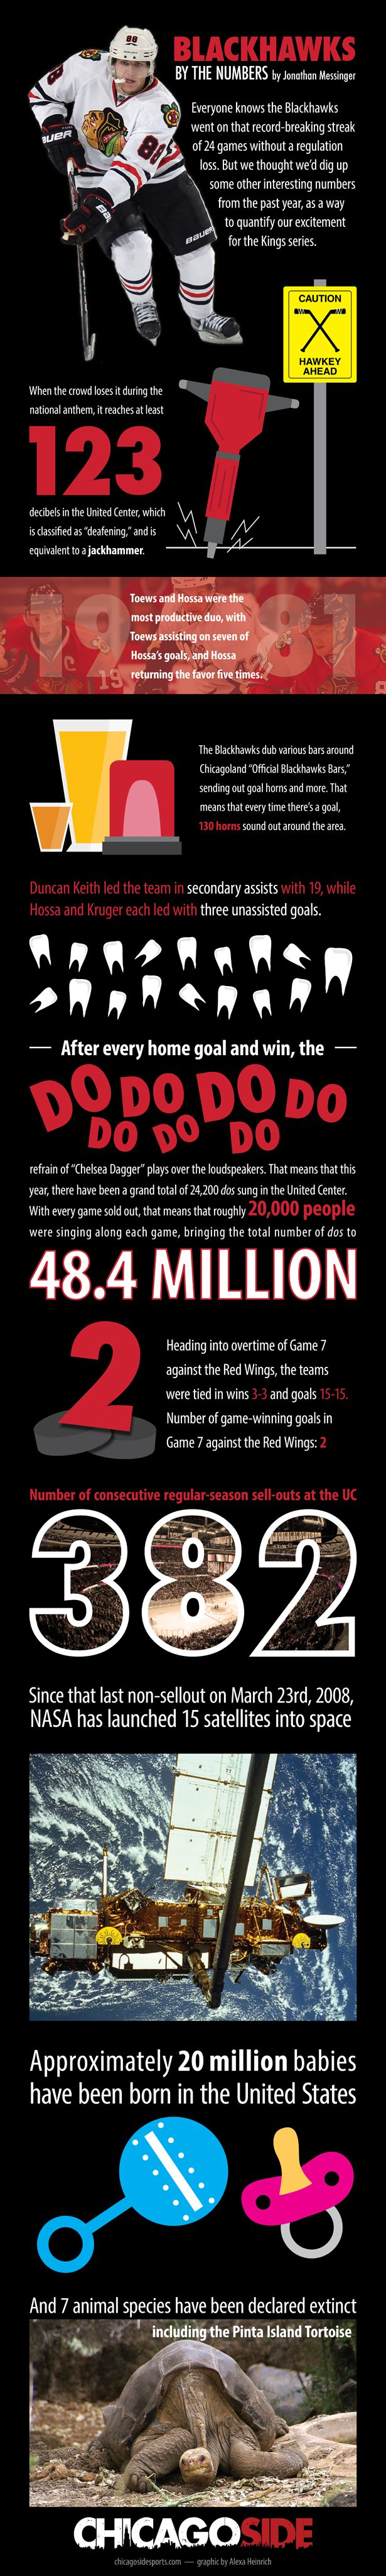 Blackhawks by the numbers..